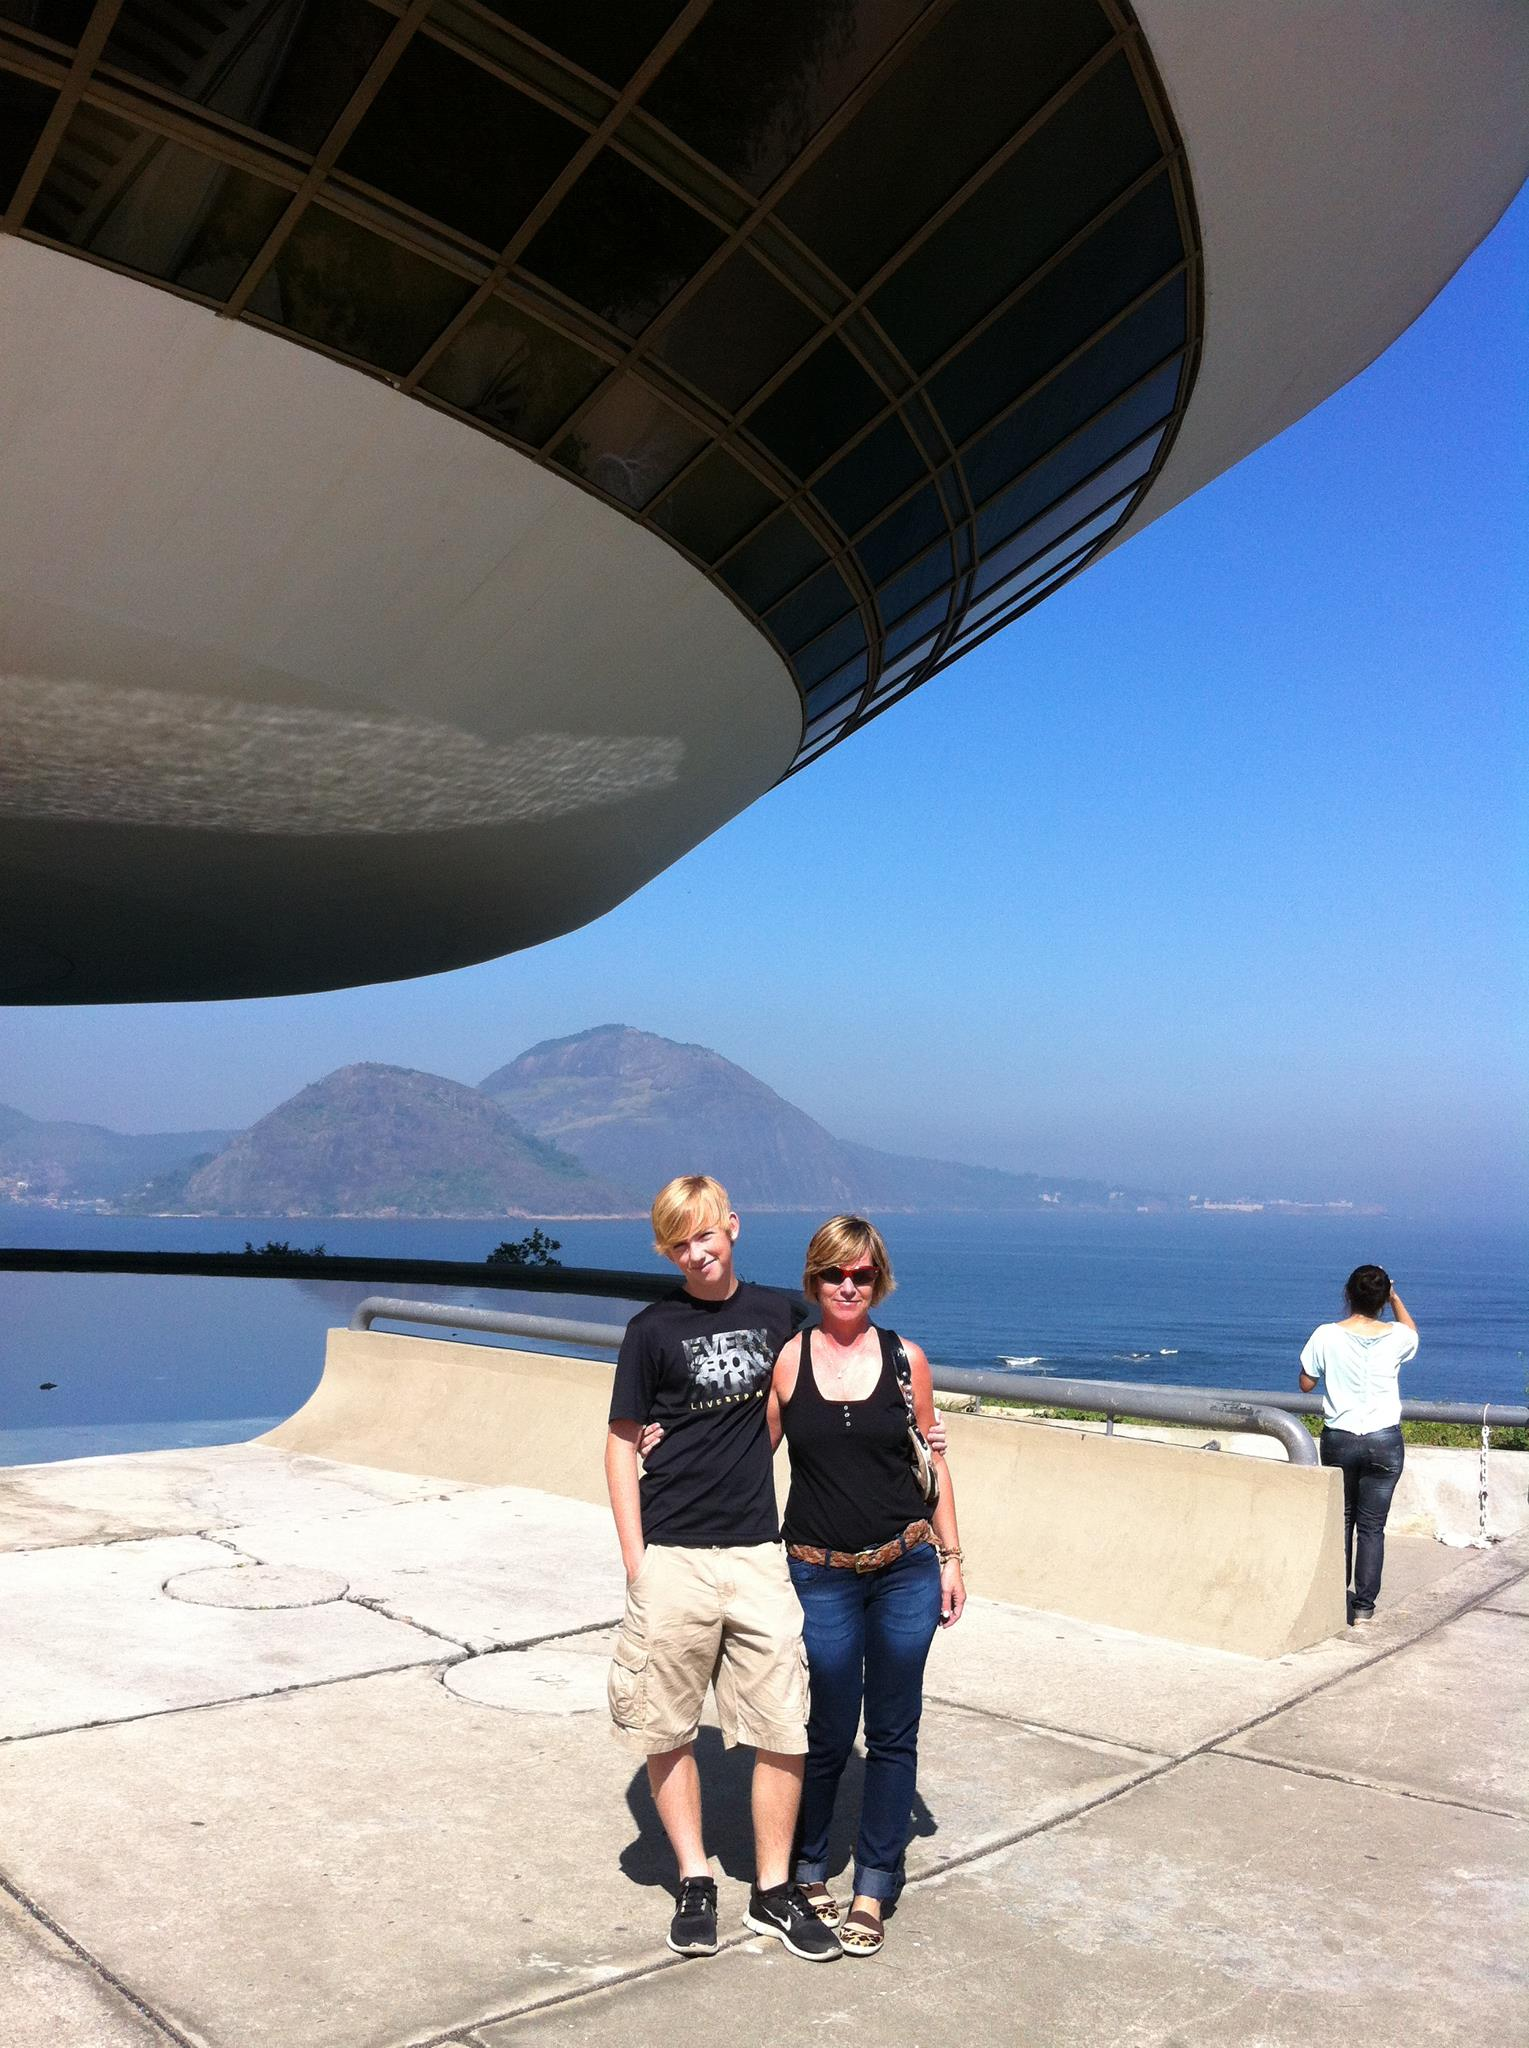 My son and I at the Museum of Contemporary Art  MAC  in Niteroi, Brazil designed by the famous Brazilian architect  Oscar Niemeyer .